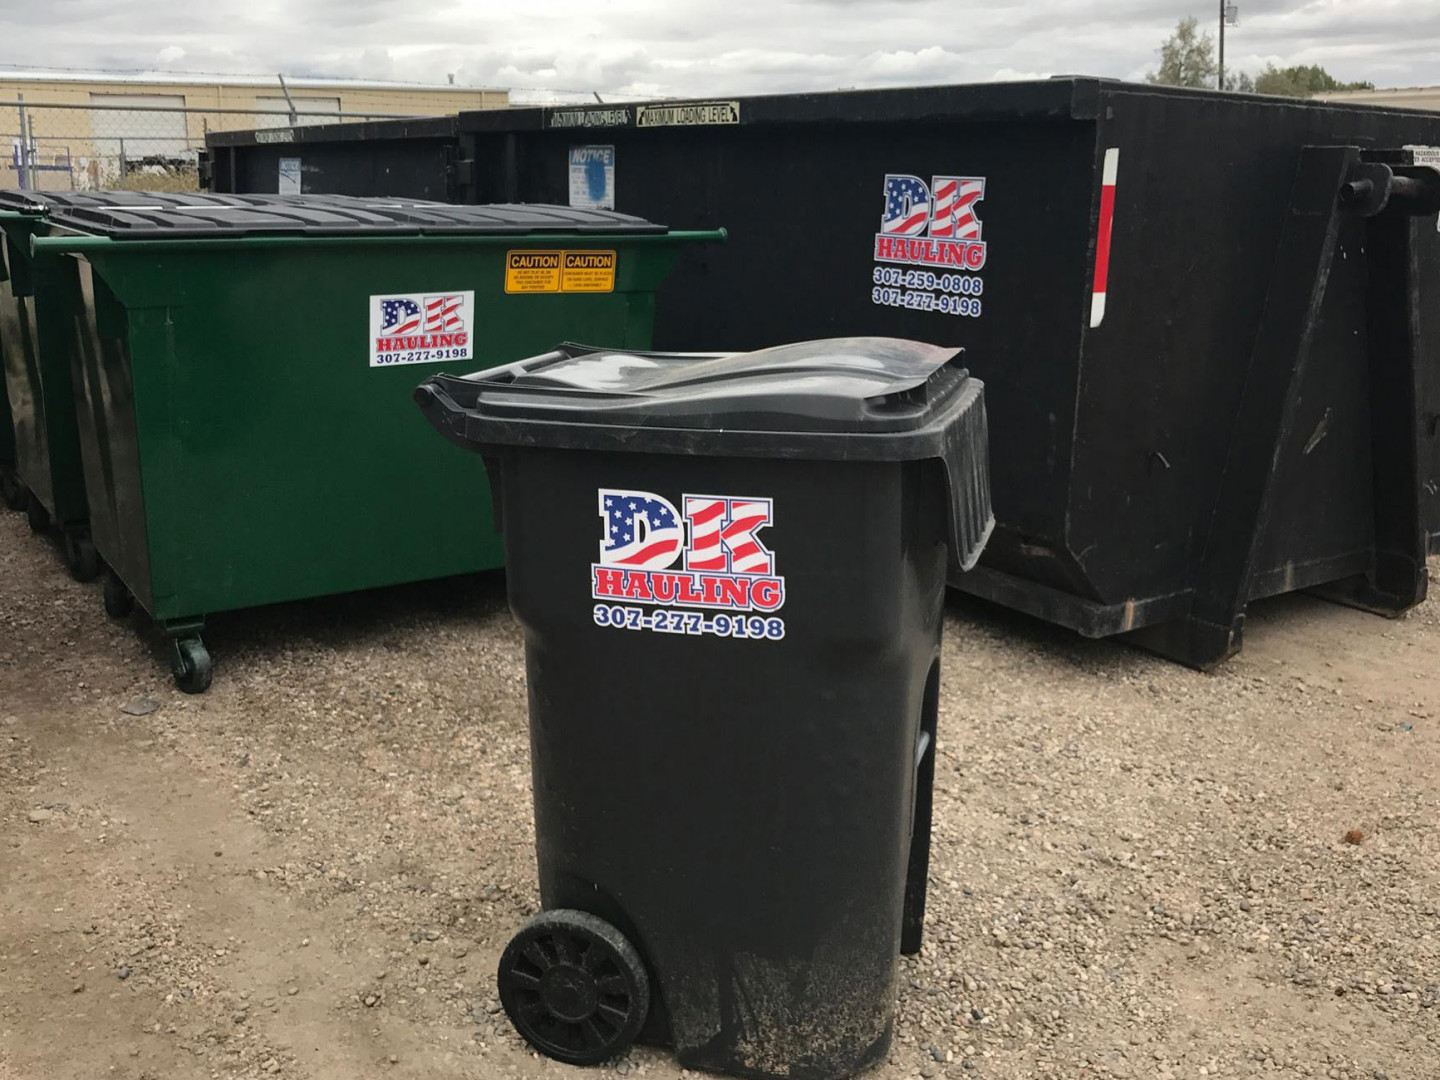 3 reasons to choose us for trash out service